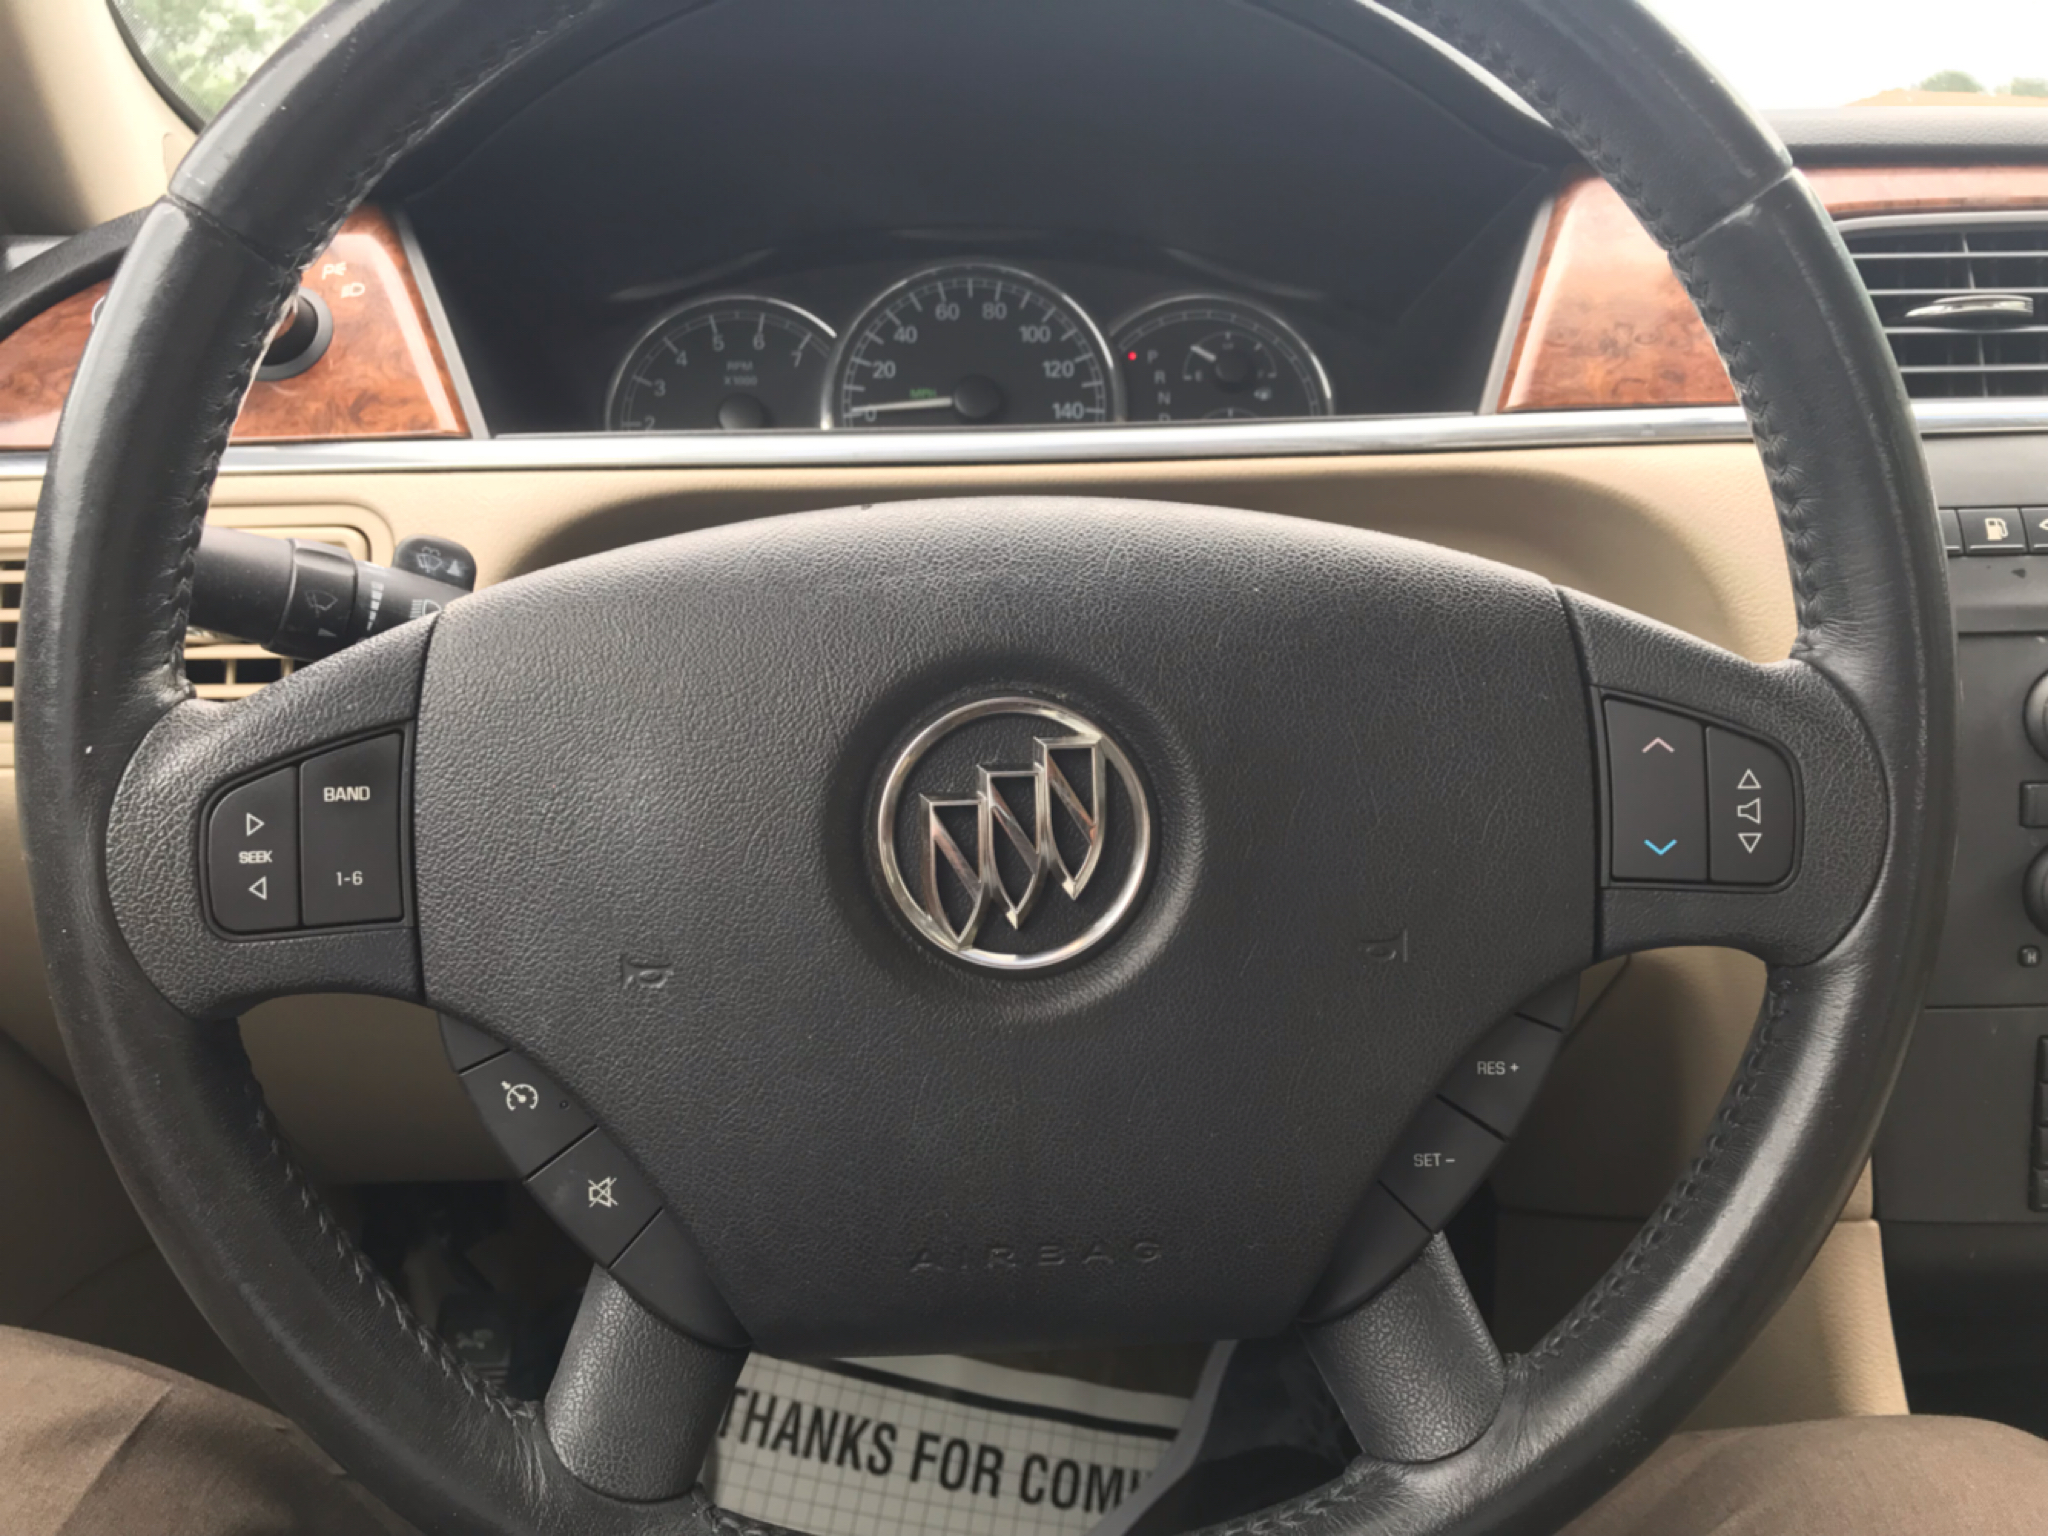 2006 Buick LaCrosse 4dr Sdn CXS